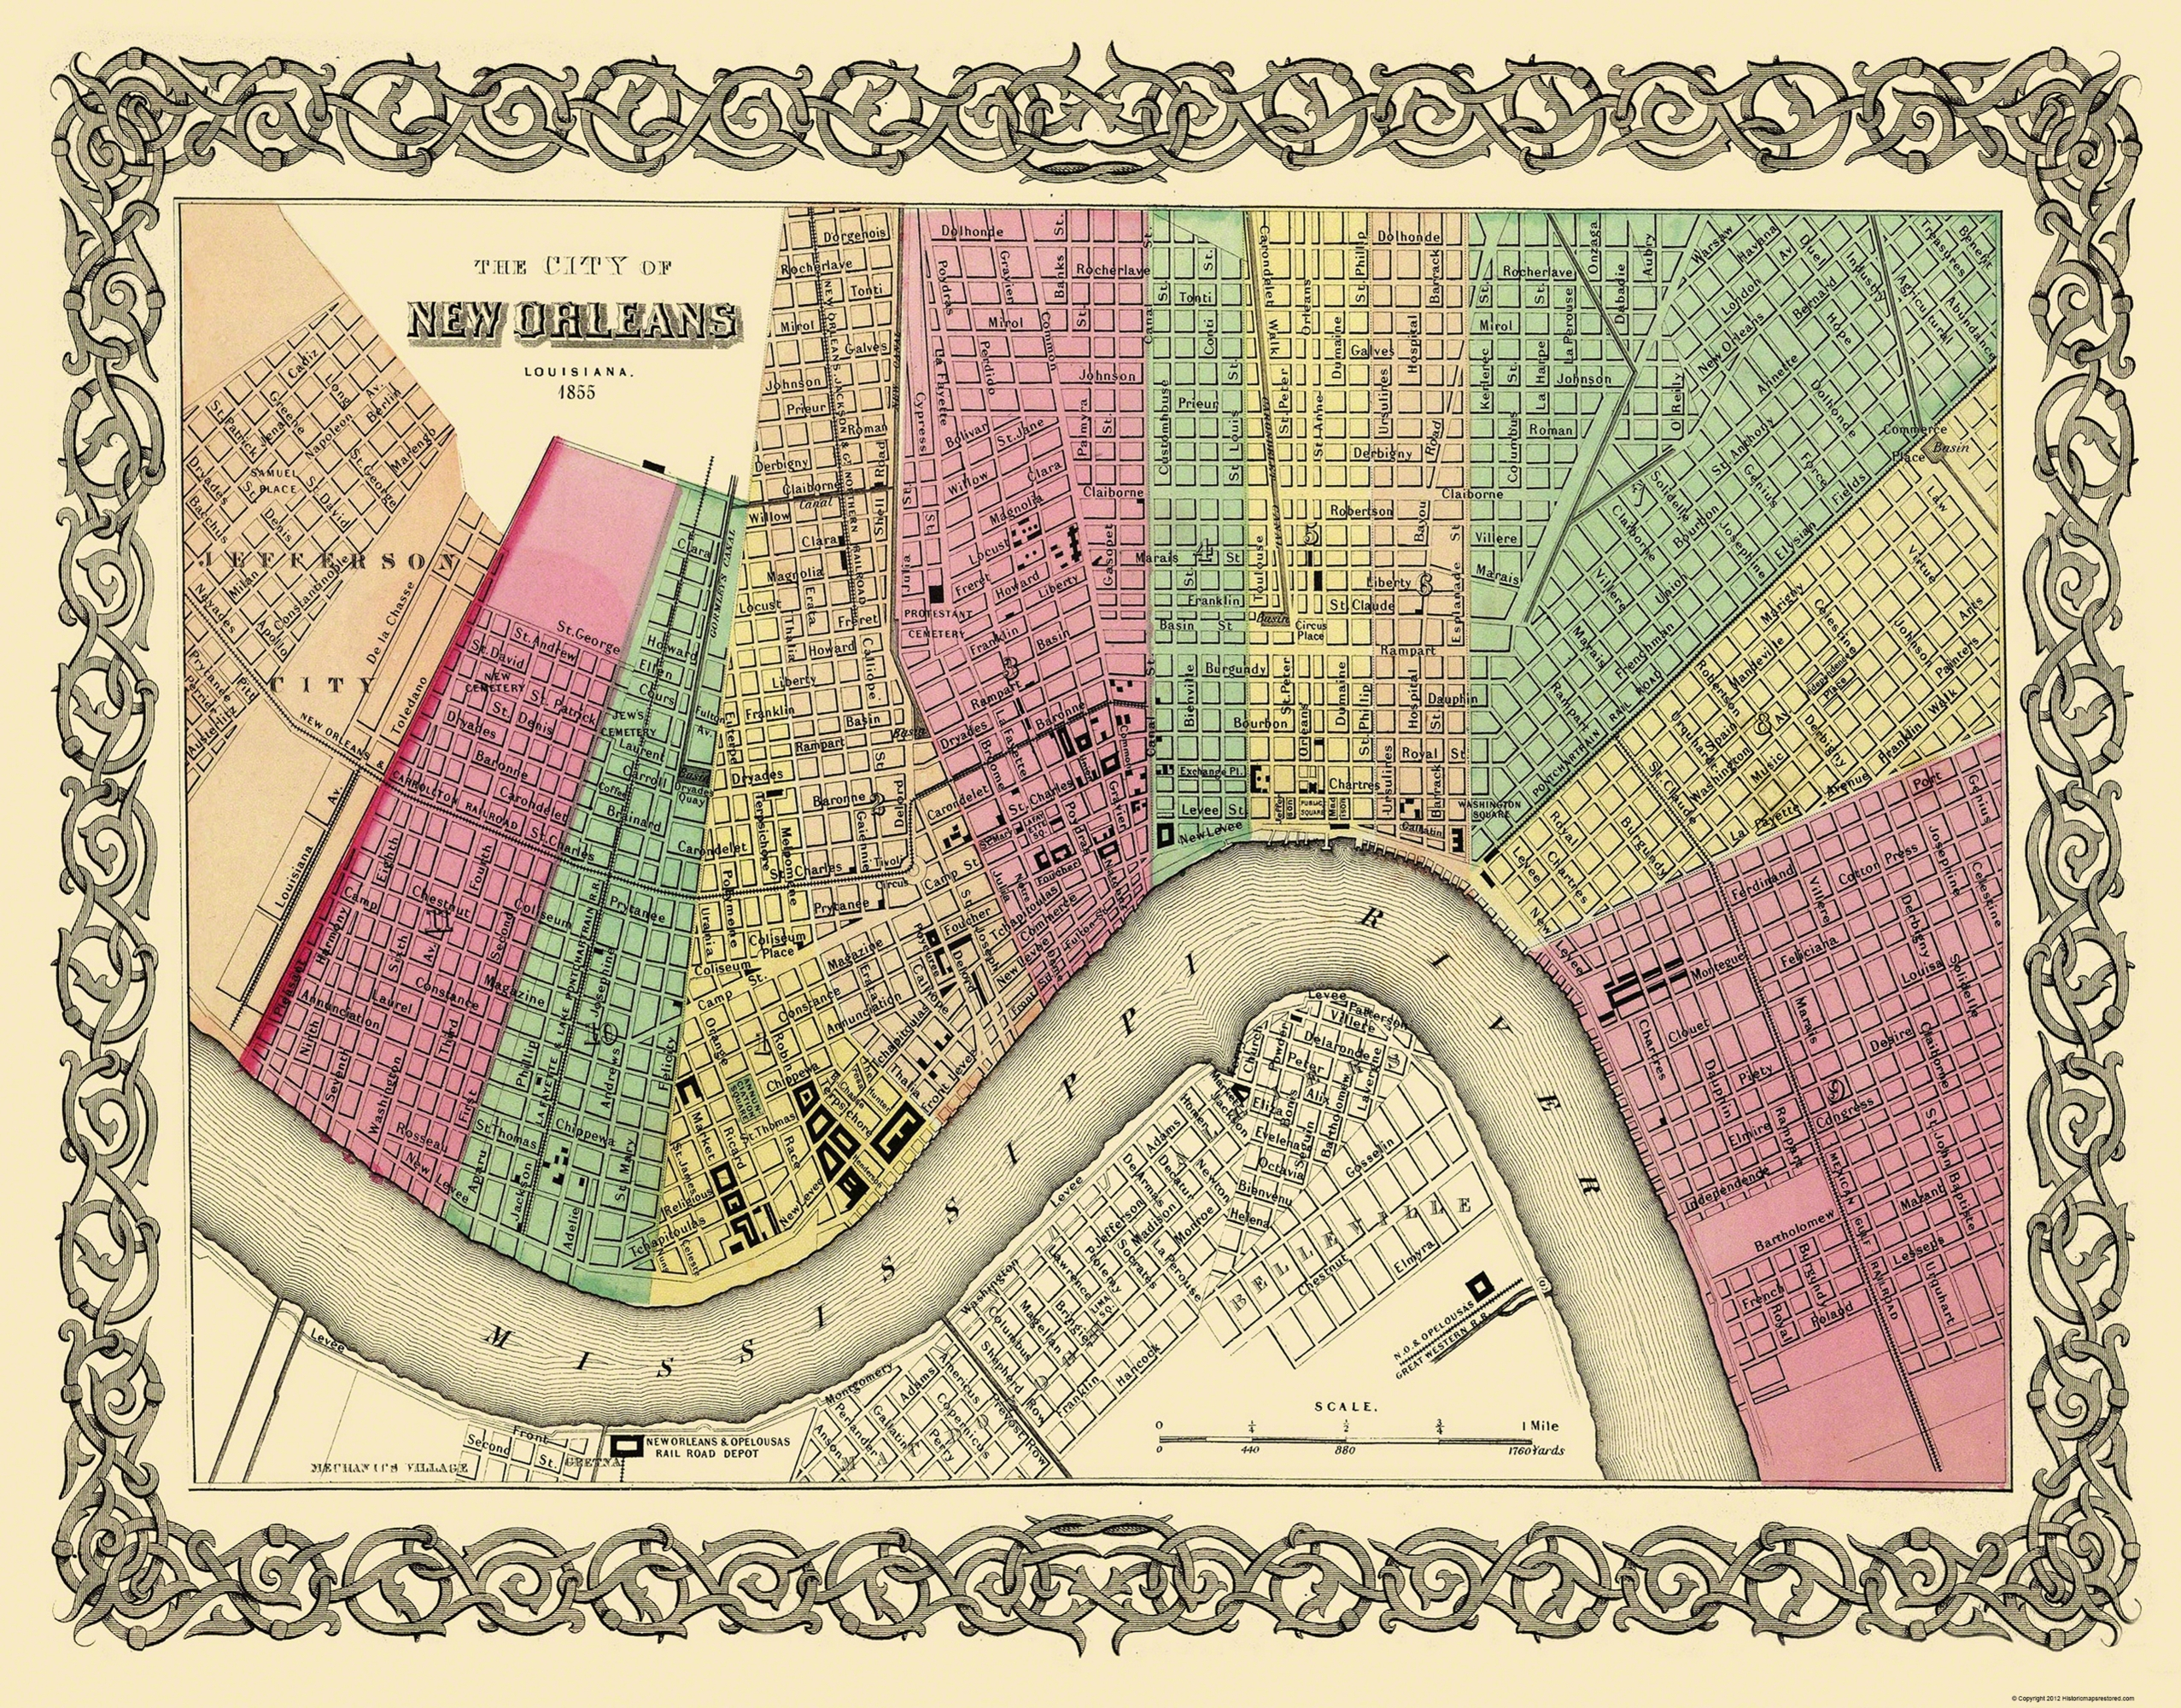 Old City Map - New Orleans Louisiana - 1855